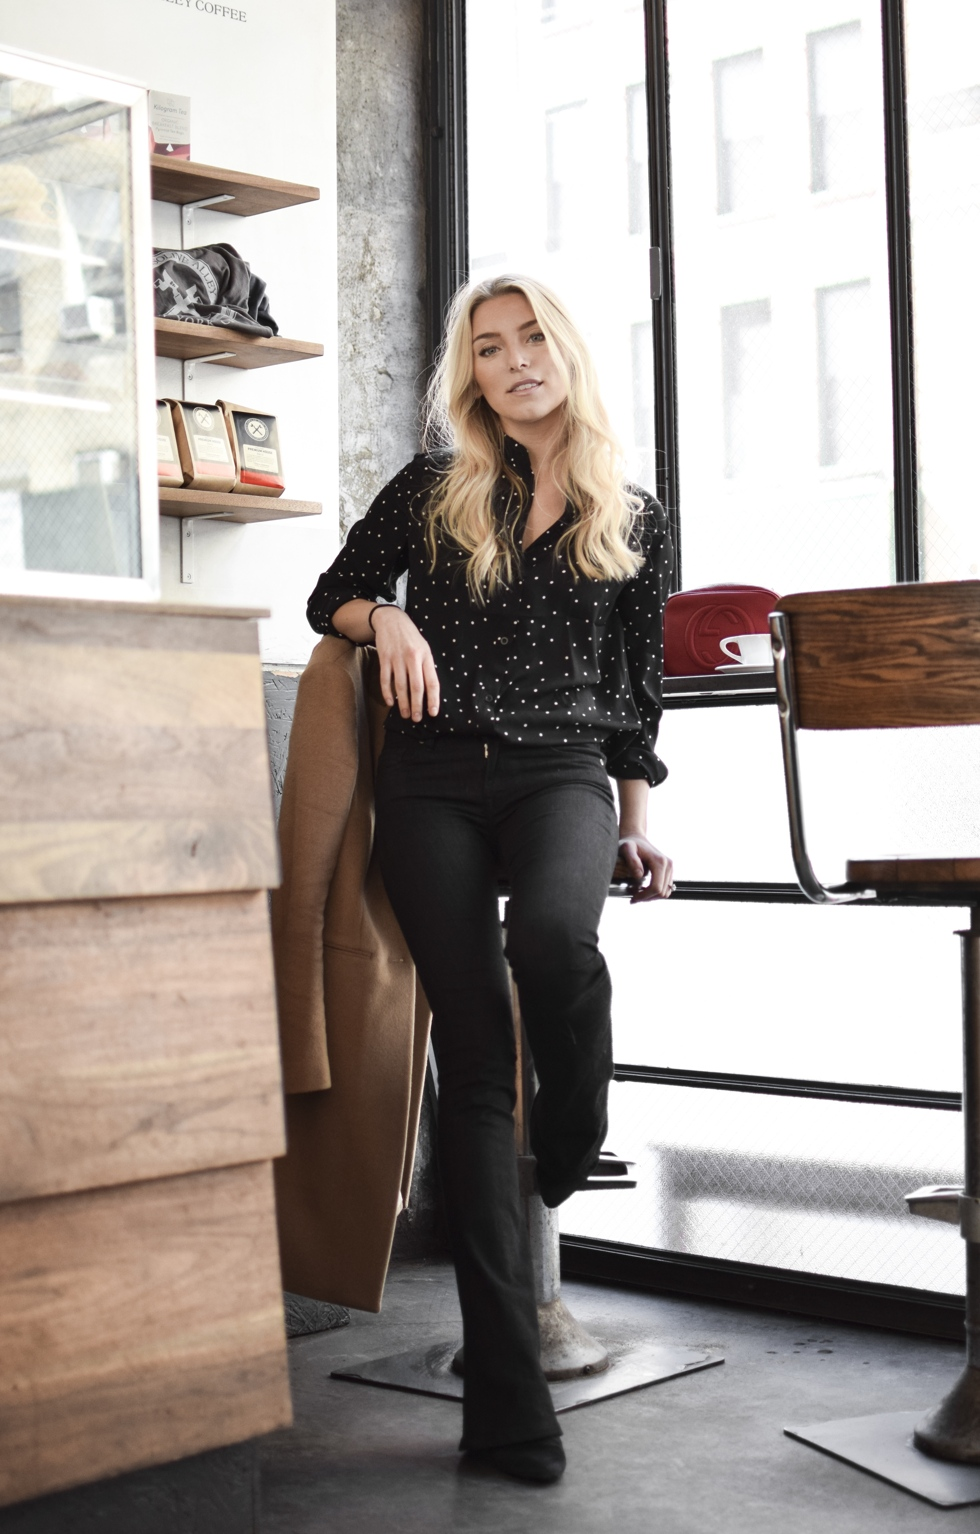 sanne_outfit_gasoline_alley_coffee_new_york_3